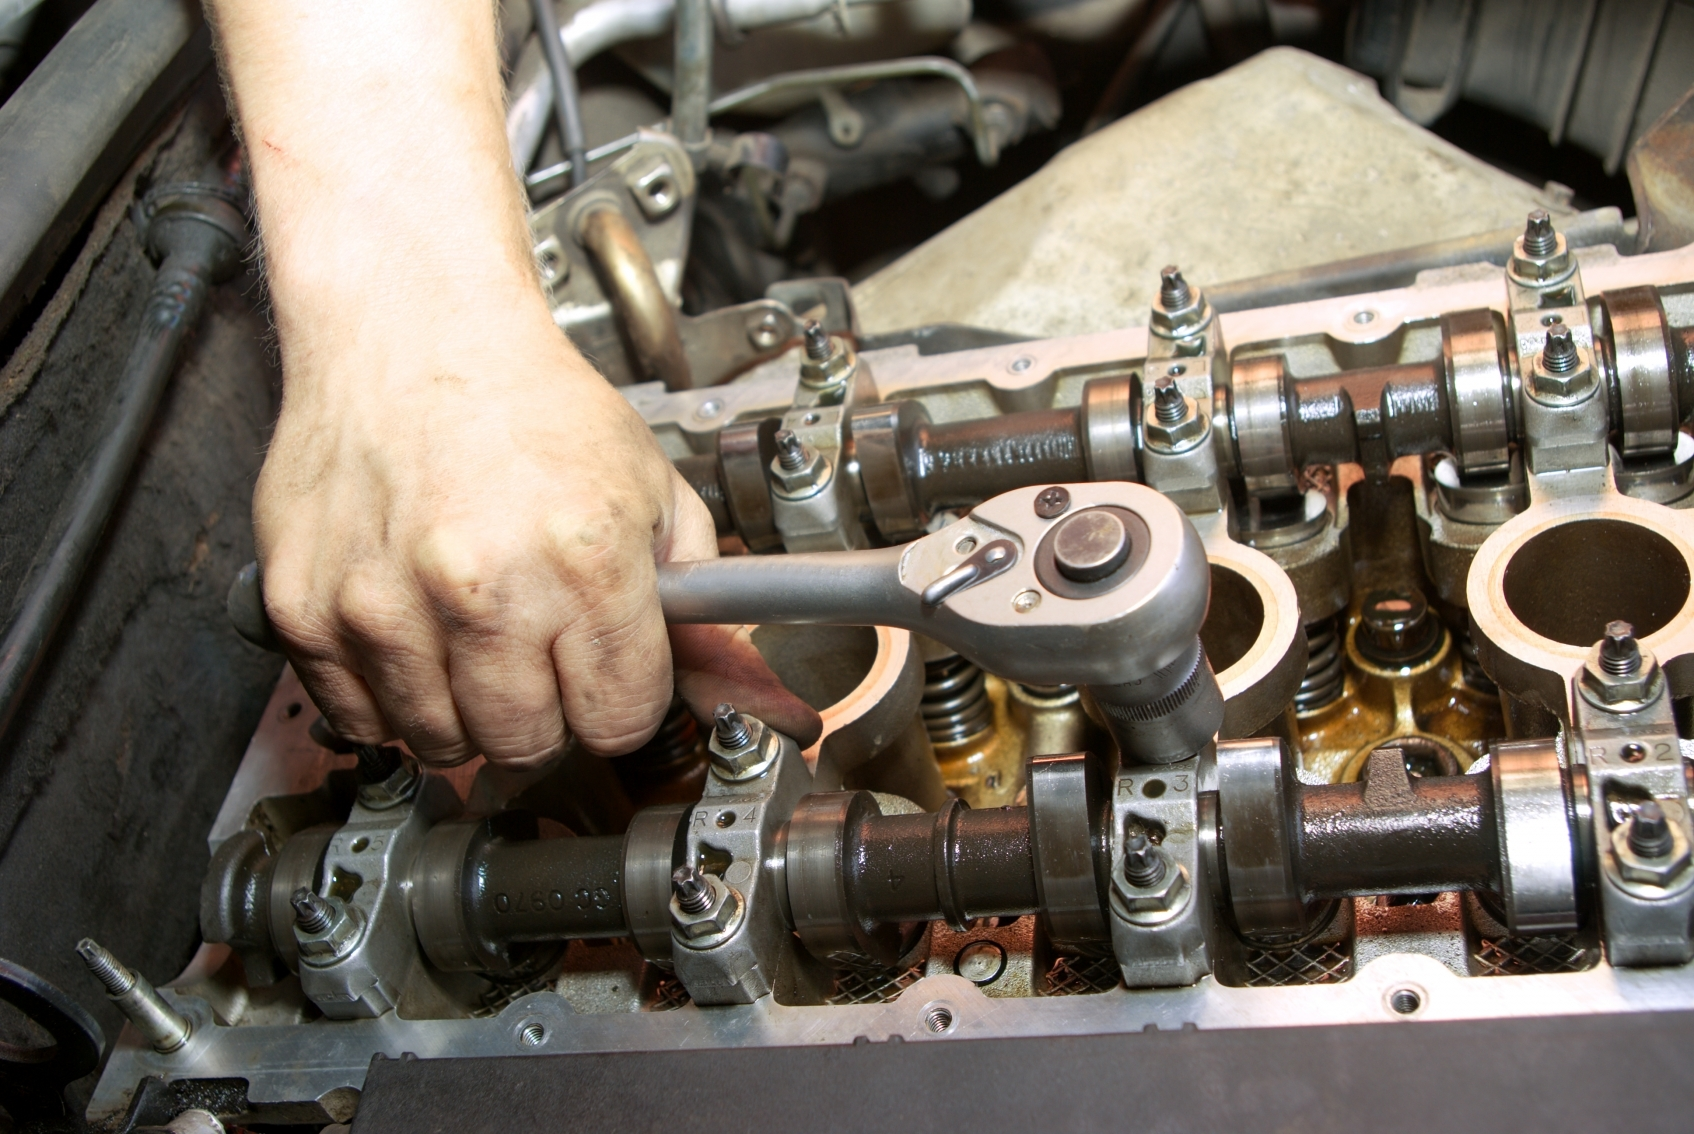 Texas auto care, Tune Ups, Auto repair in Brownsville, Vehicle Repairs 78520, Help with car, in 78520, 78526